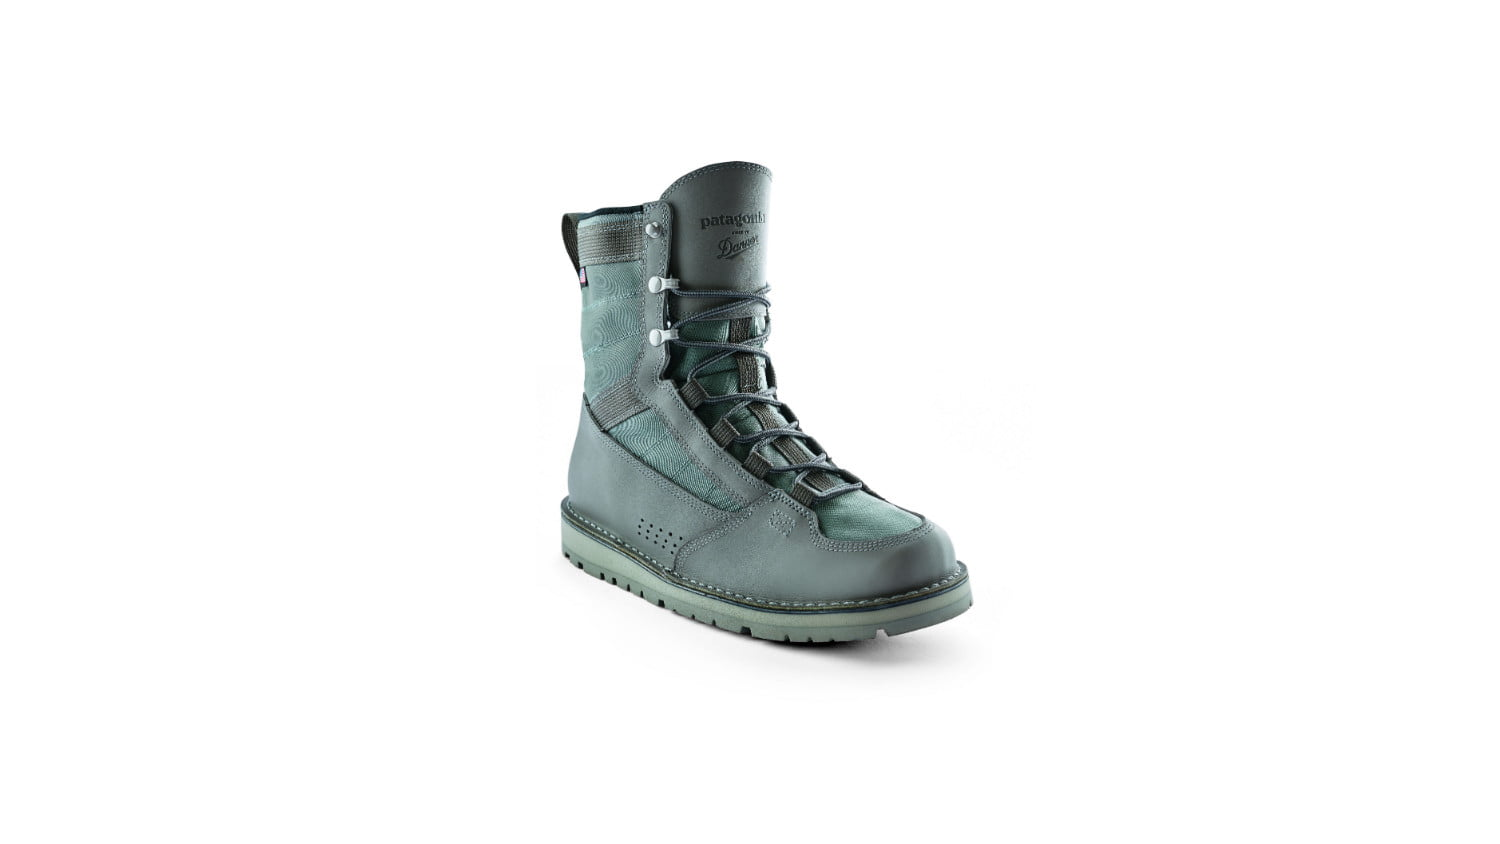 patagonia x danner fishing boots collab river salt boot  white backdrop